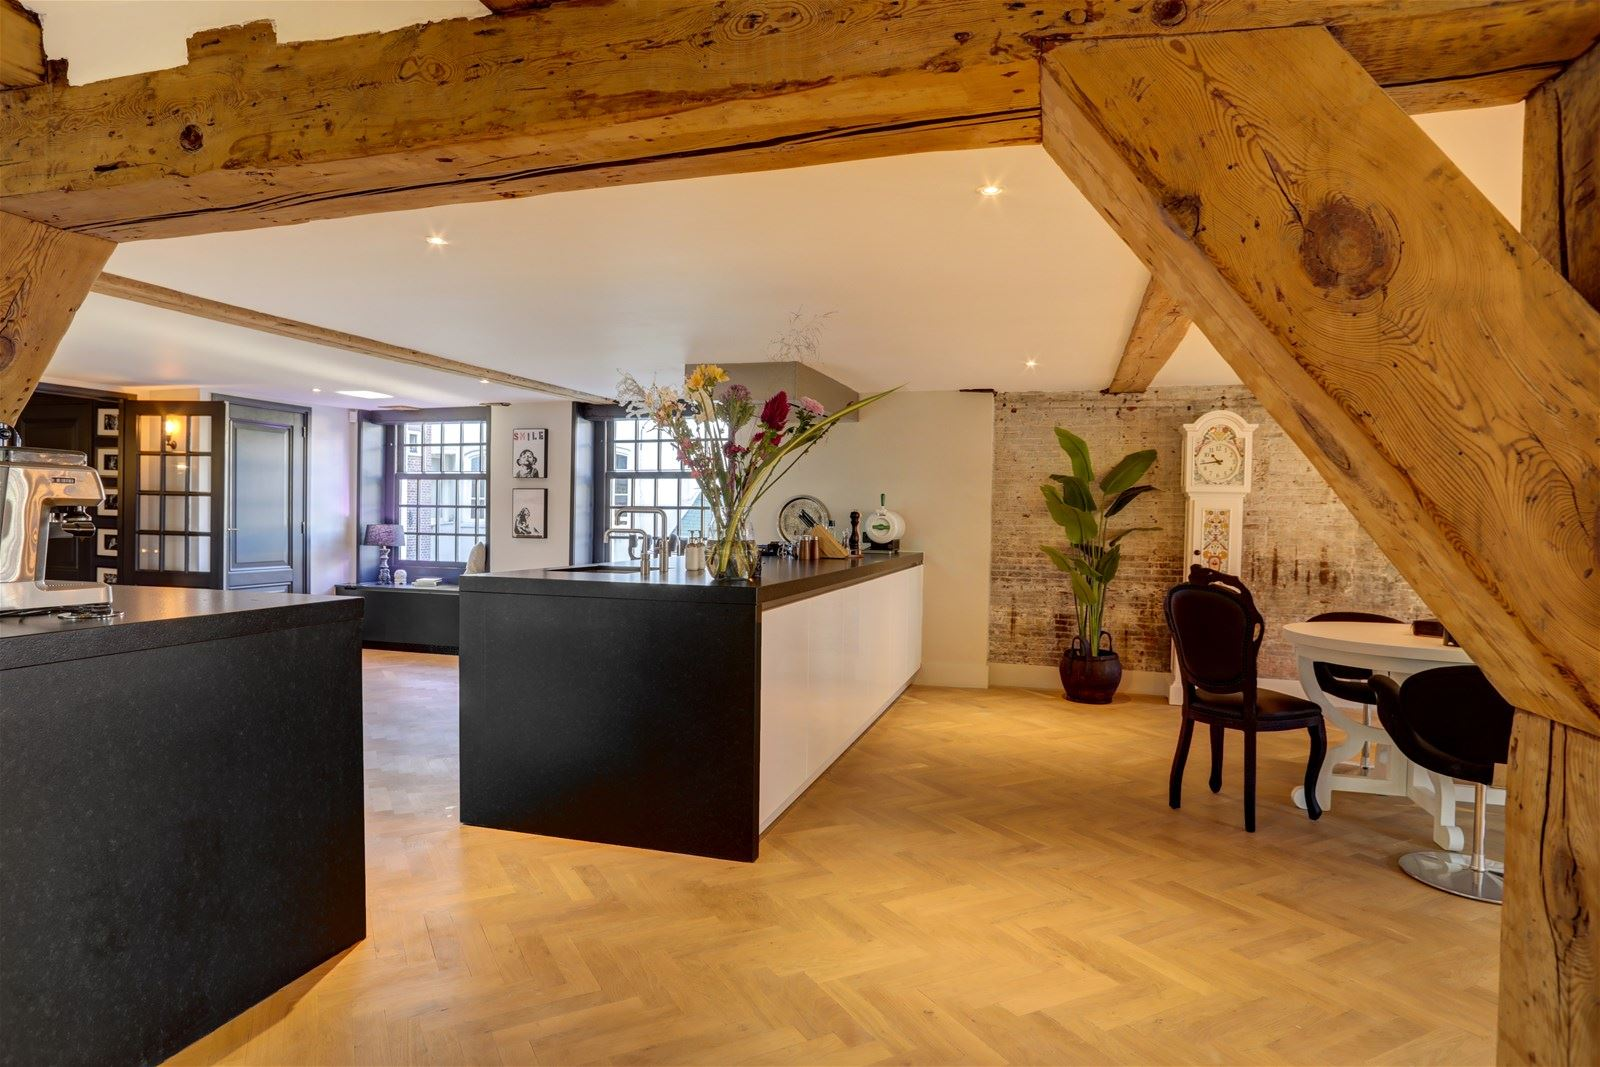 thenordroom-canalhomeamsterdam6.jpg